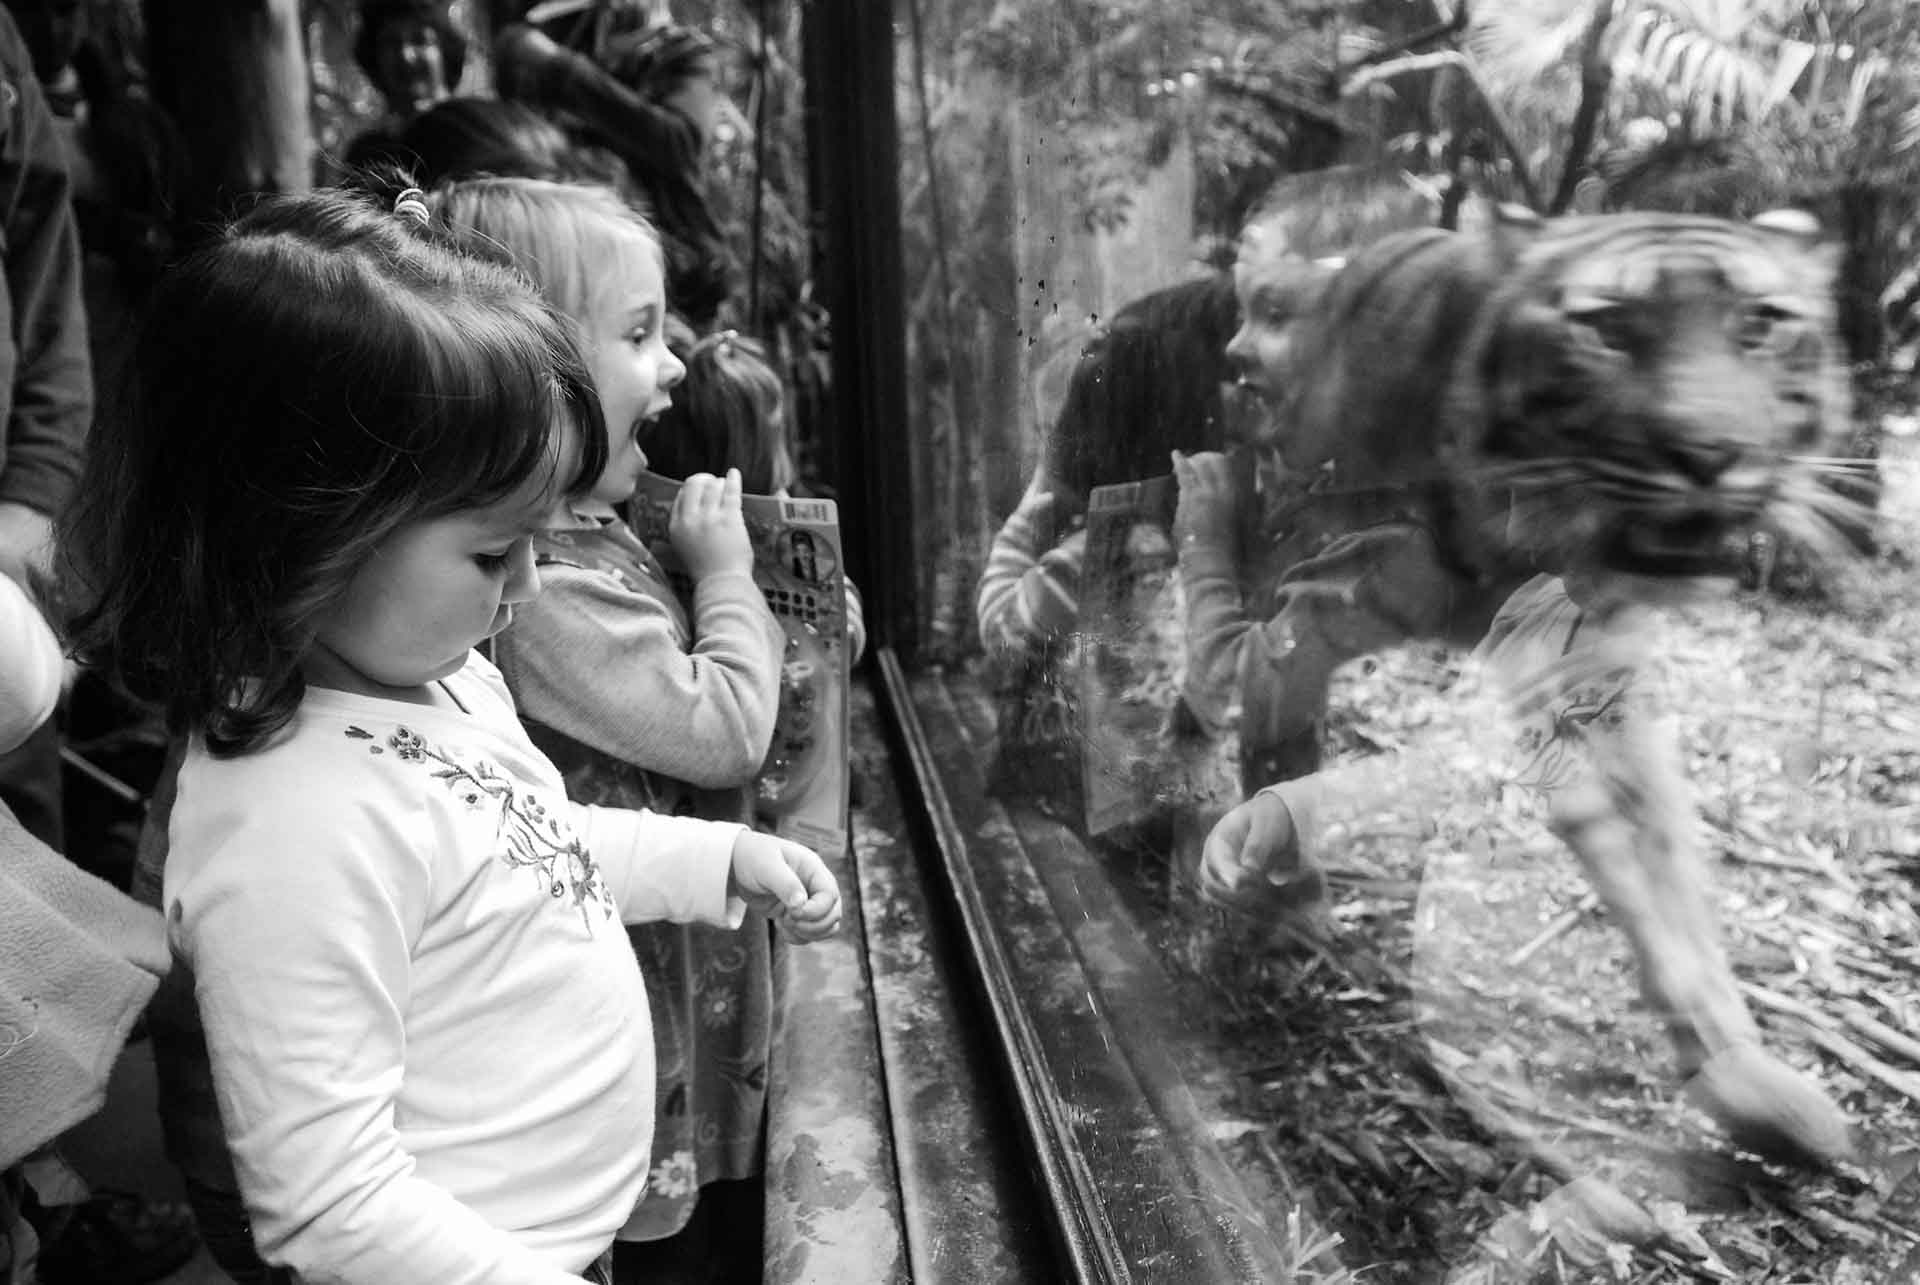 Children watching a pacing tiger